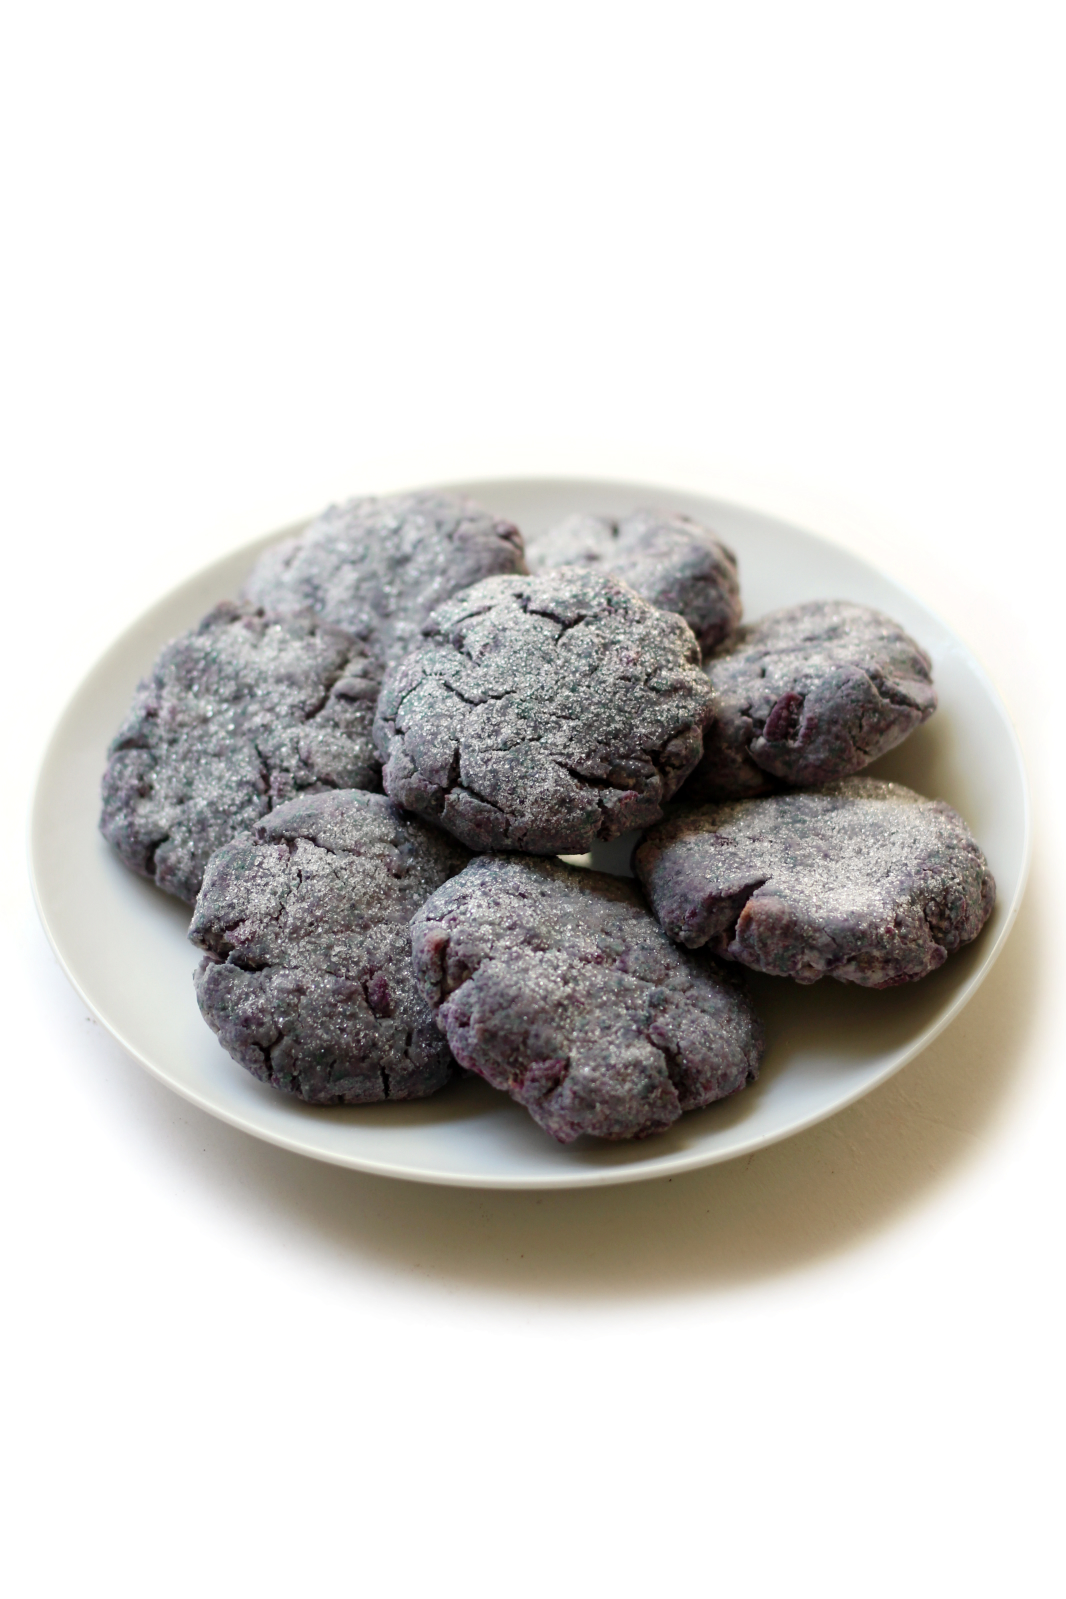 Purple Sweet Potato Sugar Cookies | Strength and Sunshine @RebeccaGF666 No need to decorate these sugar cookies! Purple Sweet Potato Sugar Cookies are naturally purple, gluten-free, vegan, and sugar-free! You would never know that these thick & soft dessert cookies are secretly healthy and loaded with fun!